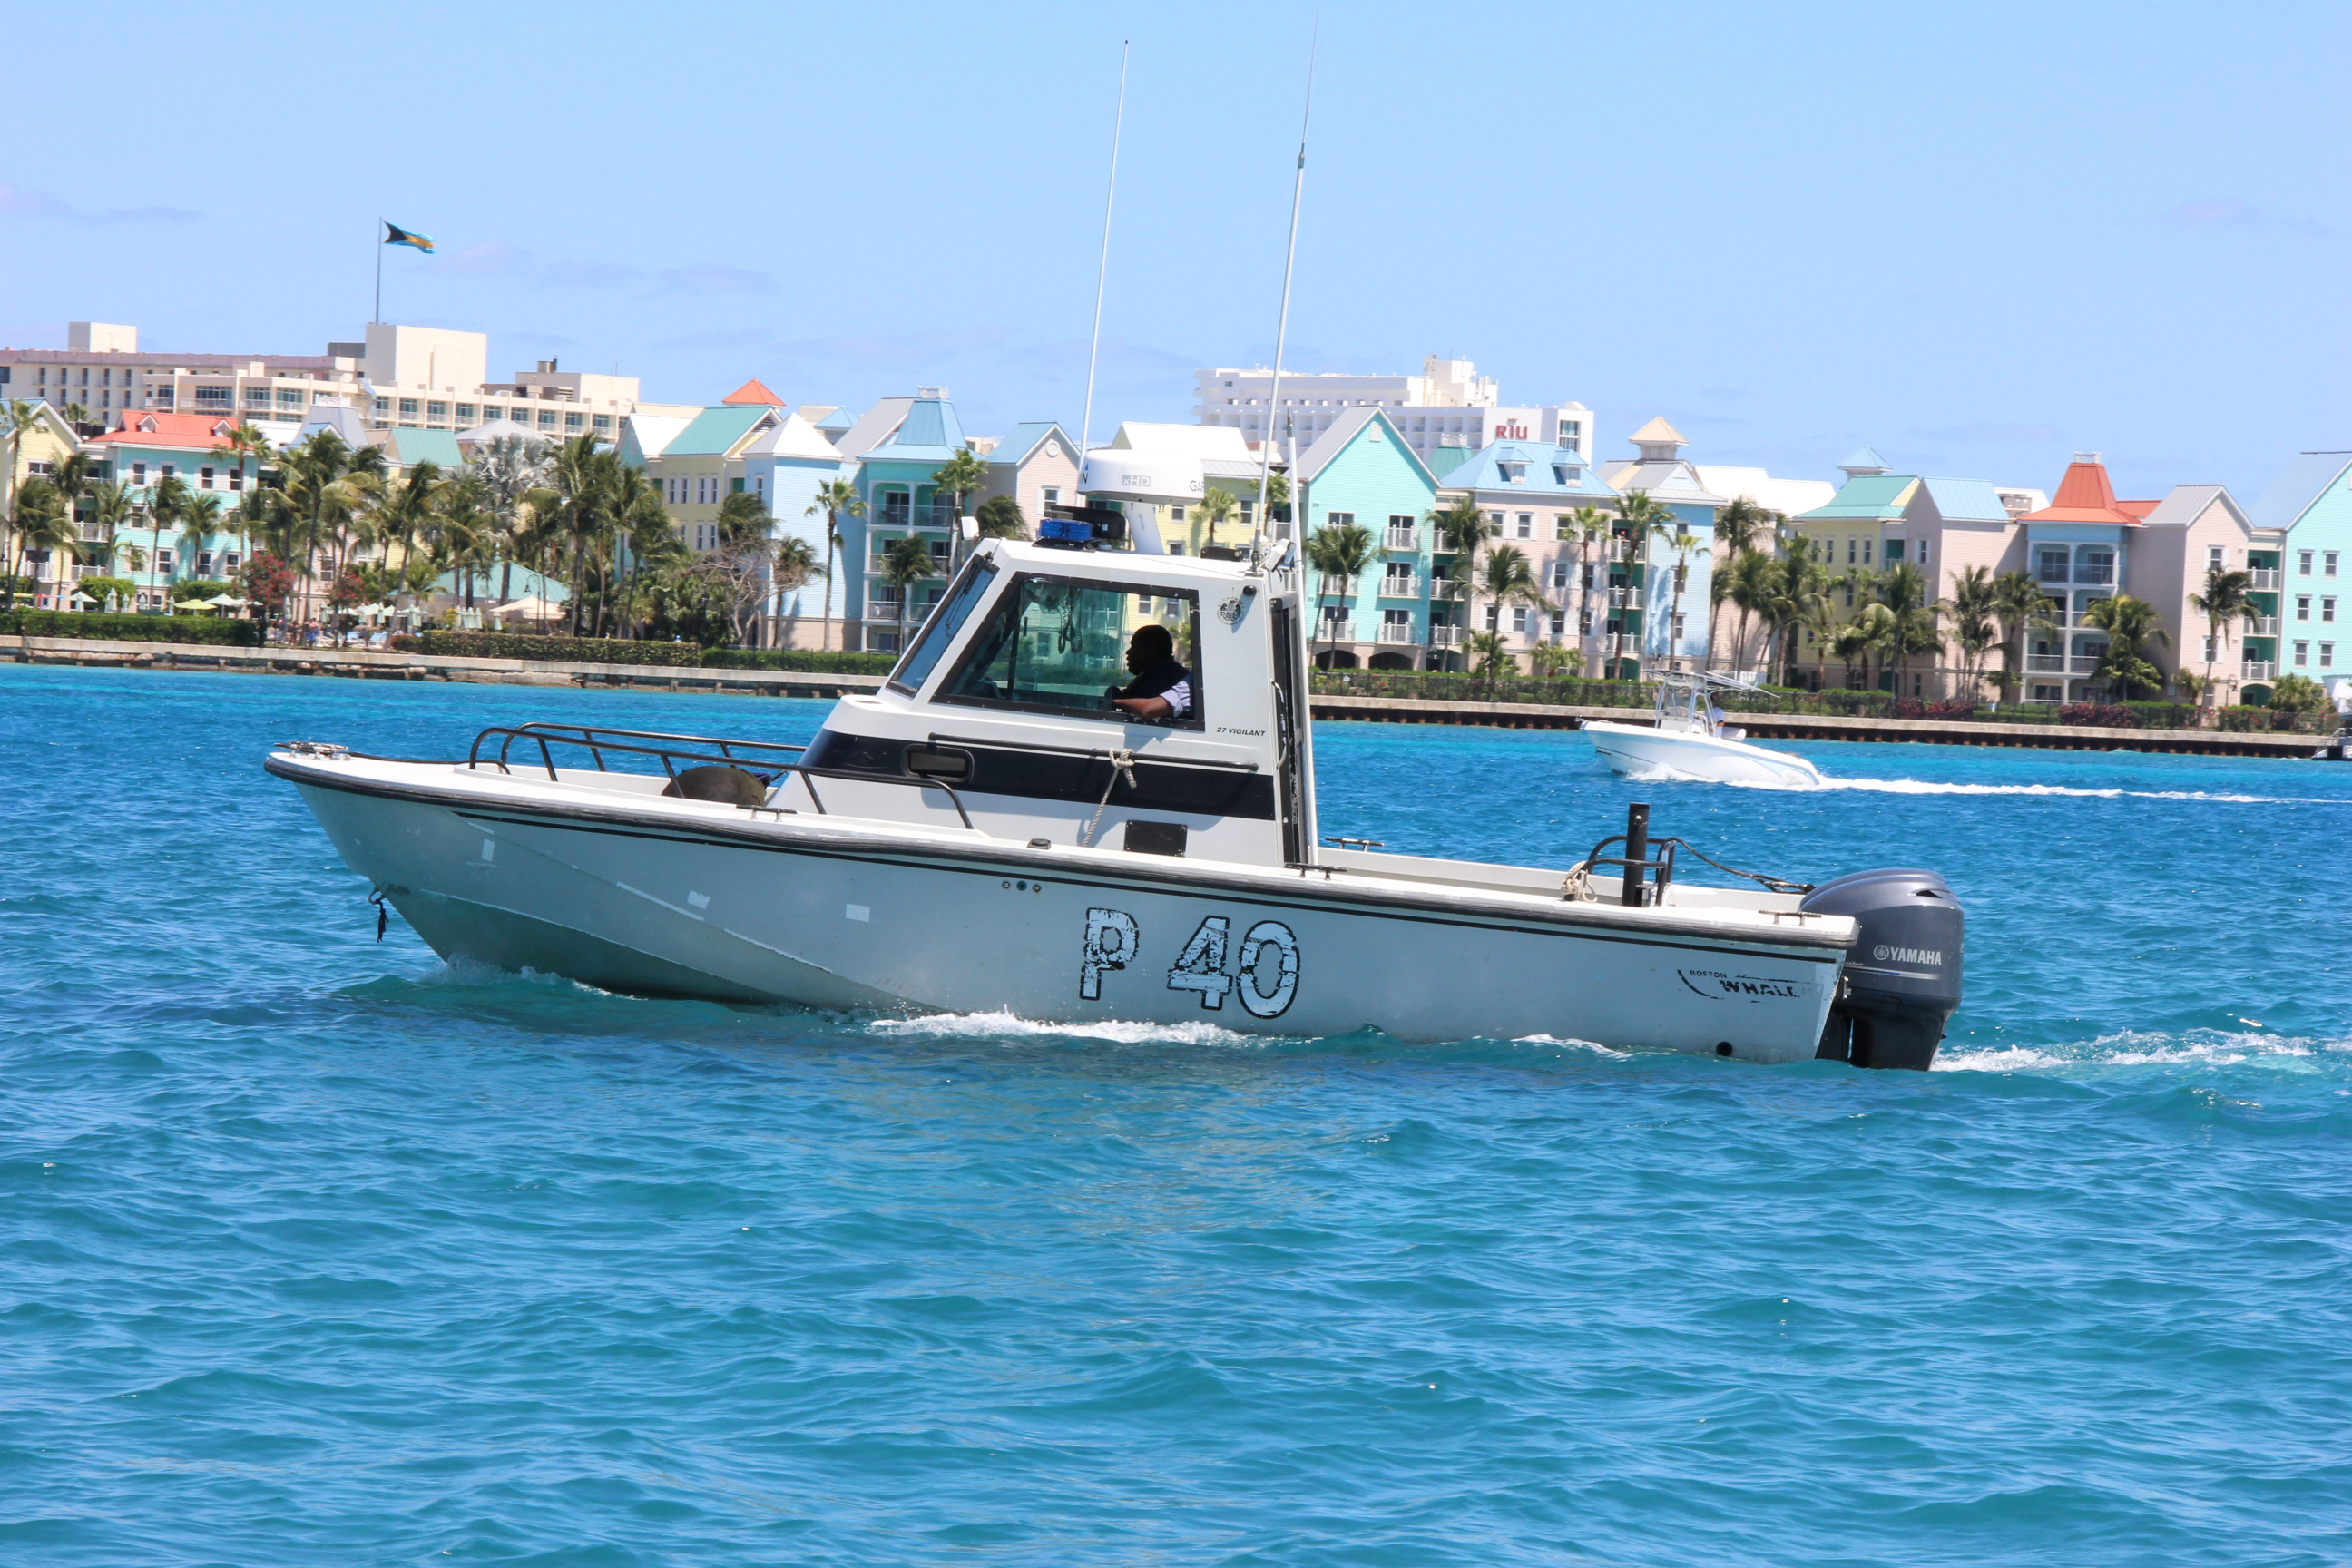 Two men rescued by RBDF after boat capsizes